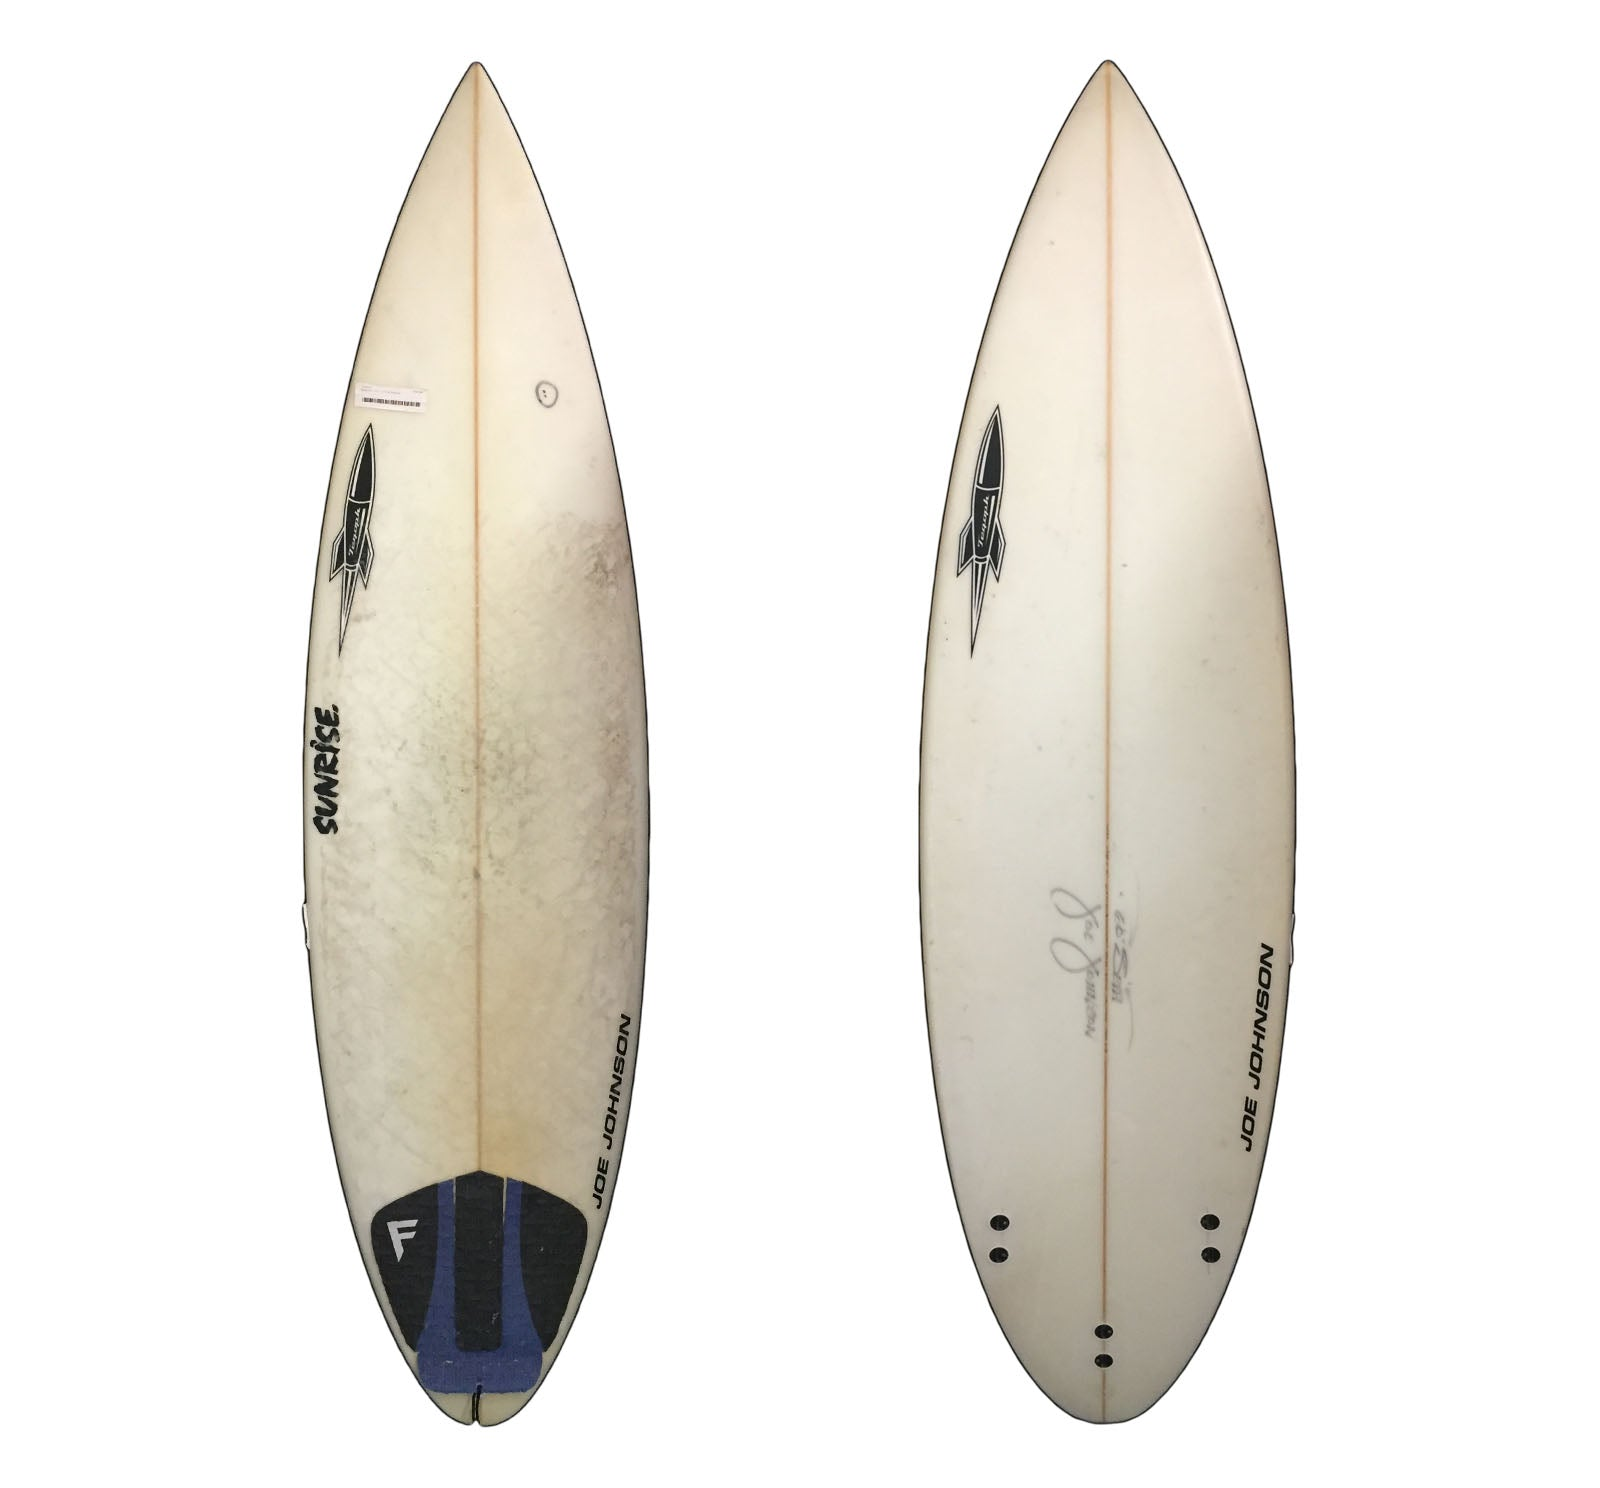 Teqoph Shortboard 6'0 Used Surfboard